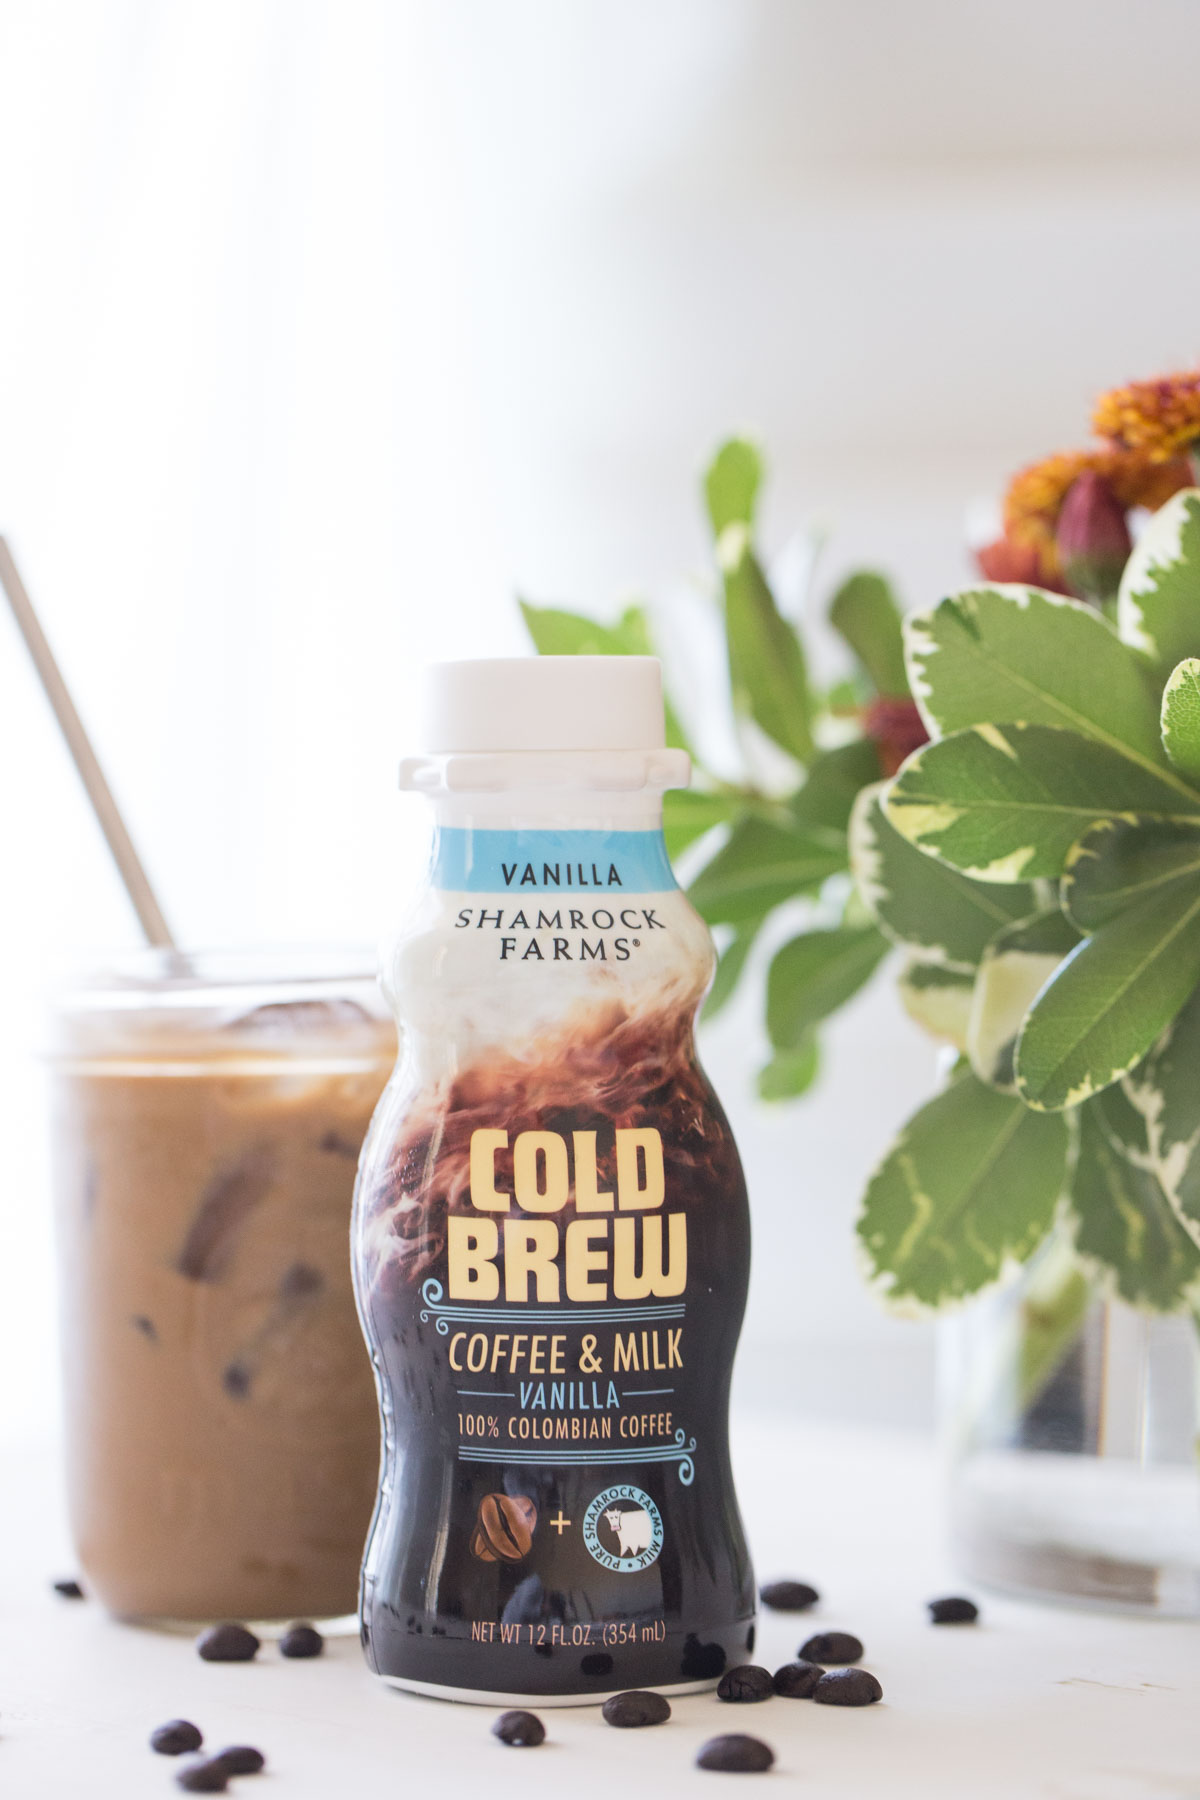 Shamrock Farms Cold Brew Coffee is a great way to enjoy a little treat during this busy season and power through that afternoon slump!